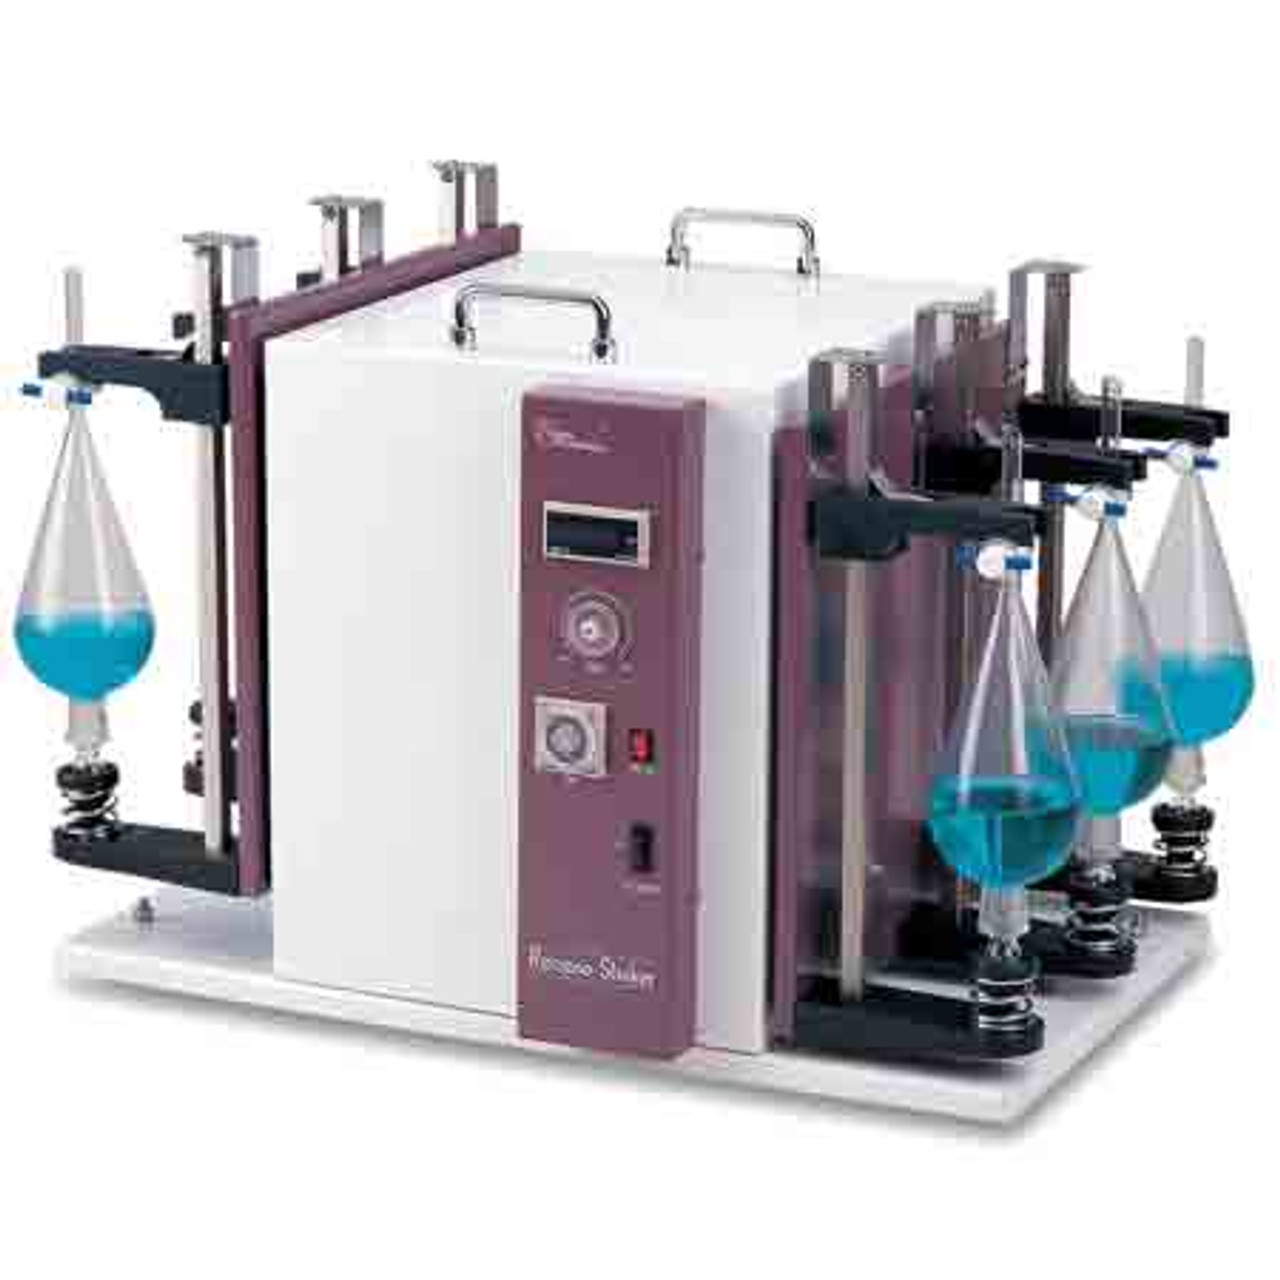 Lab Companion Rs 1 Separatory Funnel Shaker Lab Shakers And Lab Testing Equipment Certified Material Testing Products